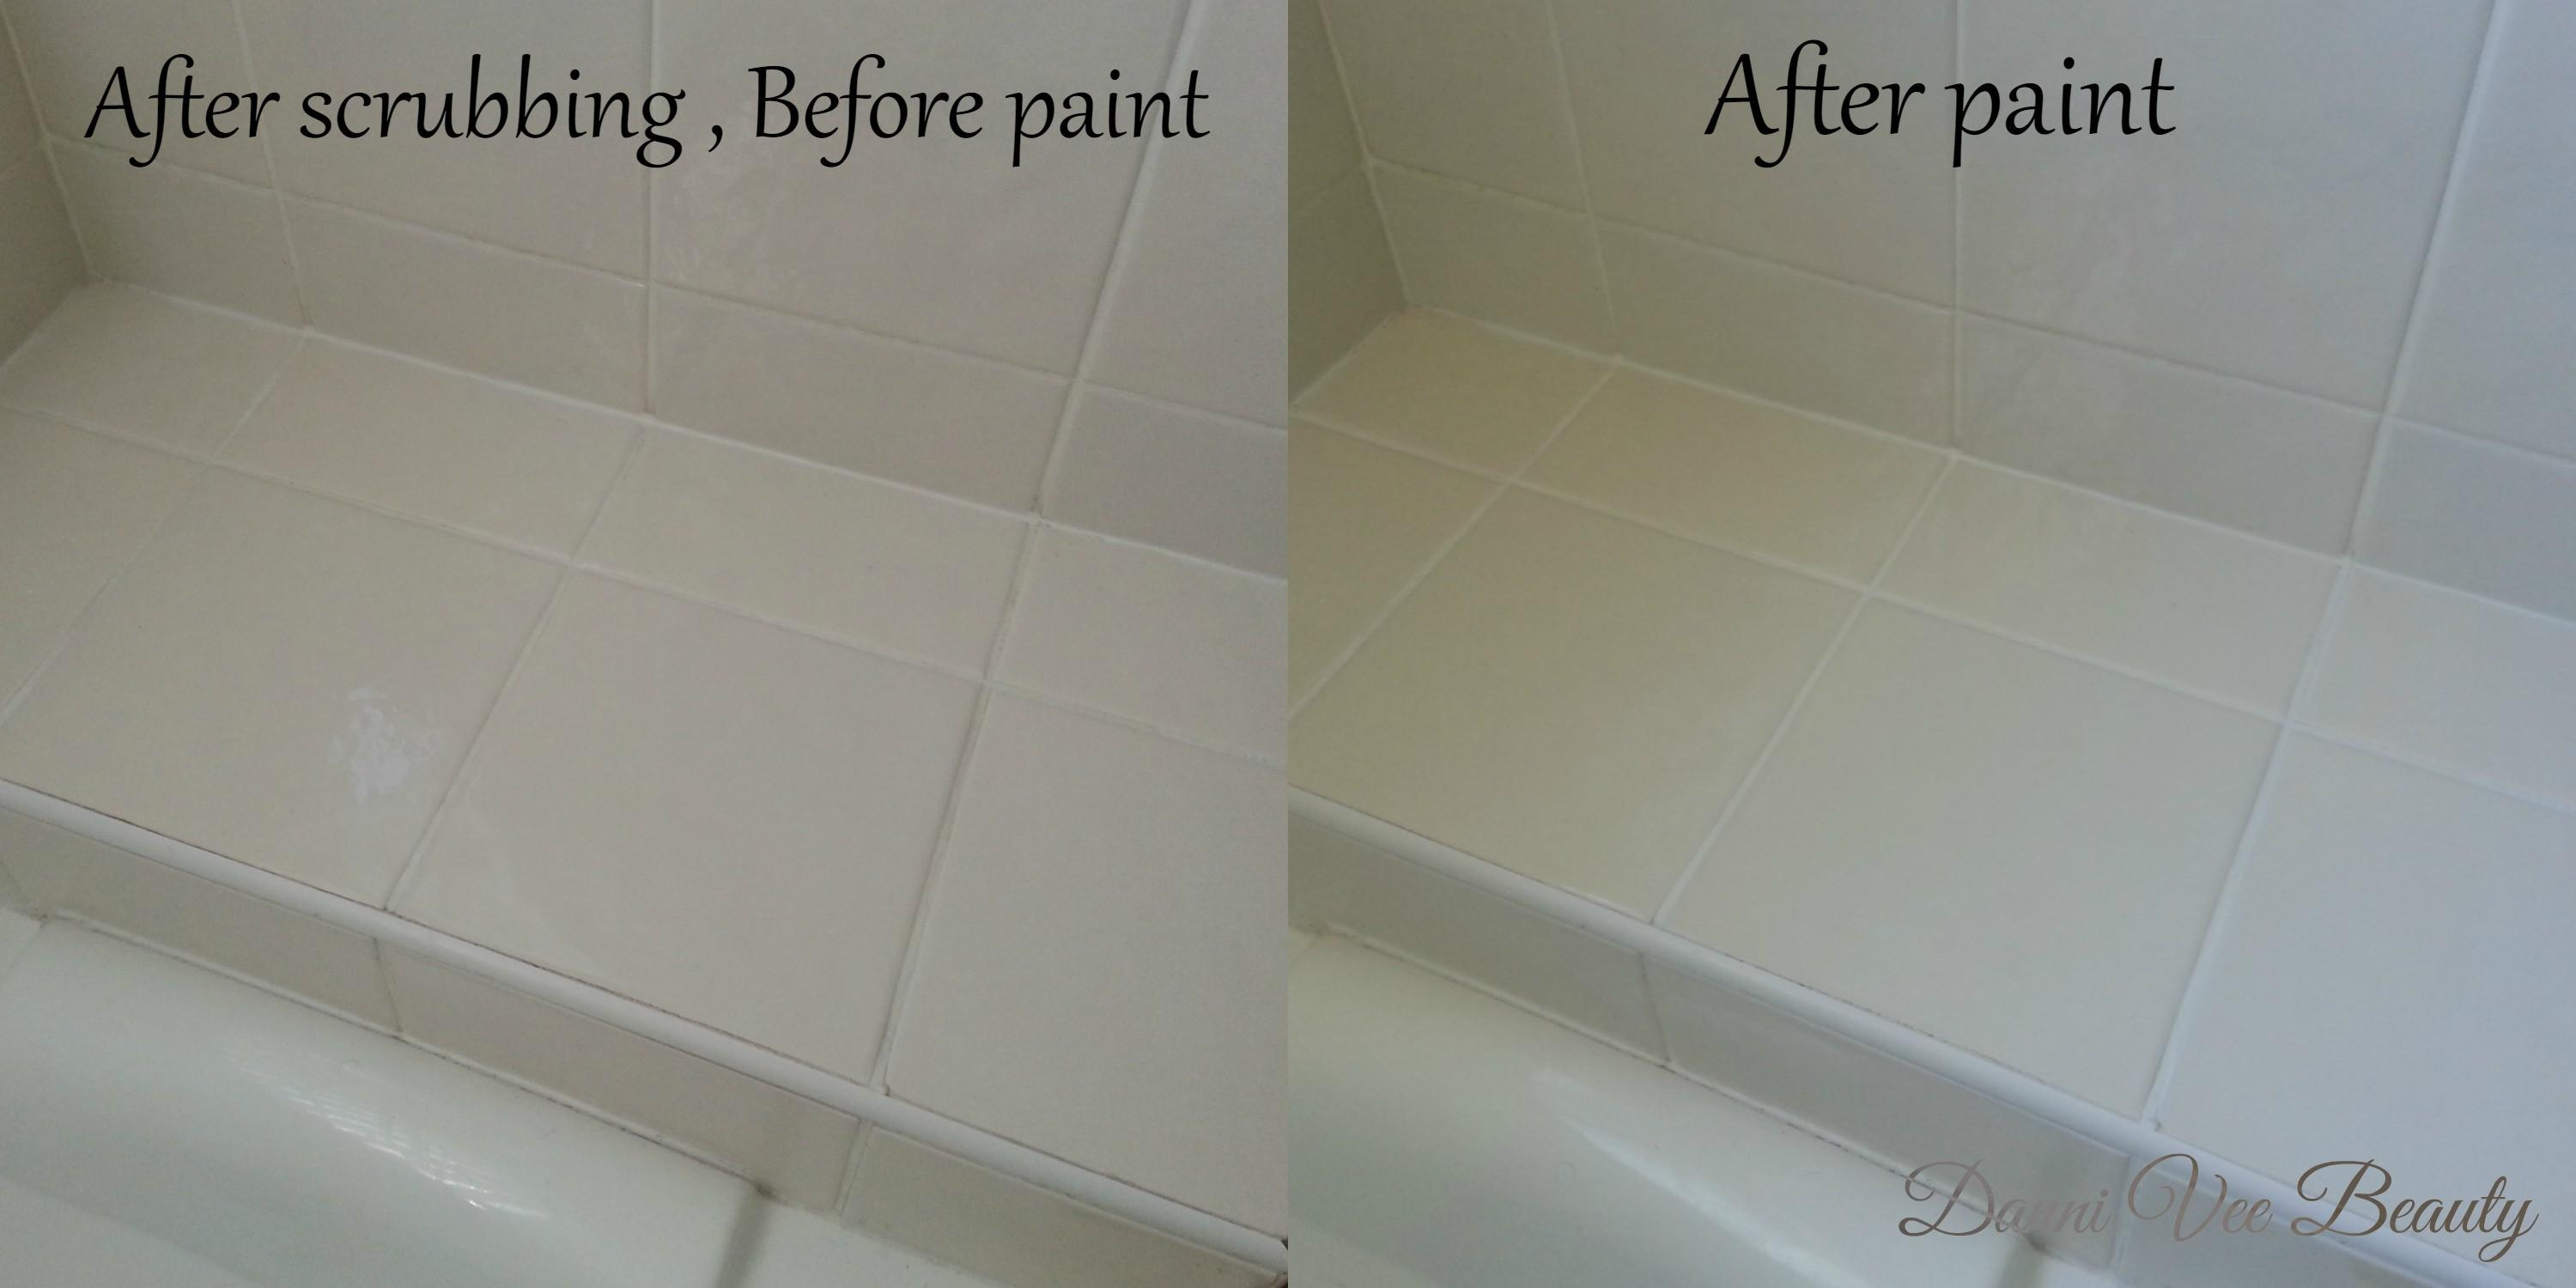 Refresh White Grout Danni Vee Beauty